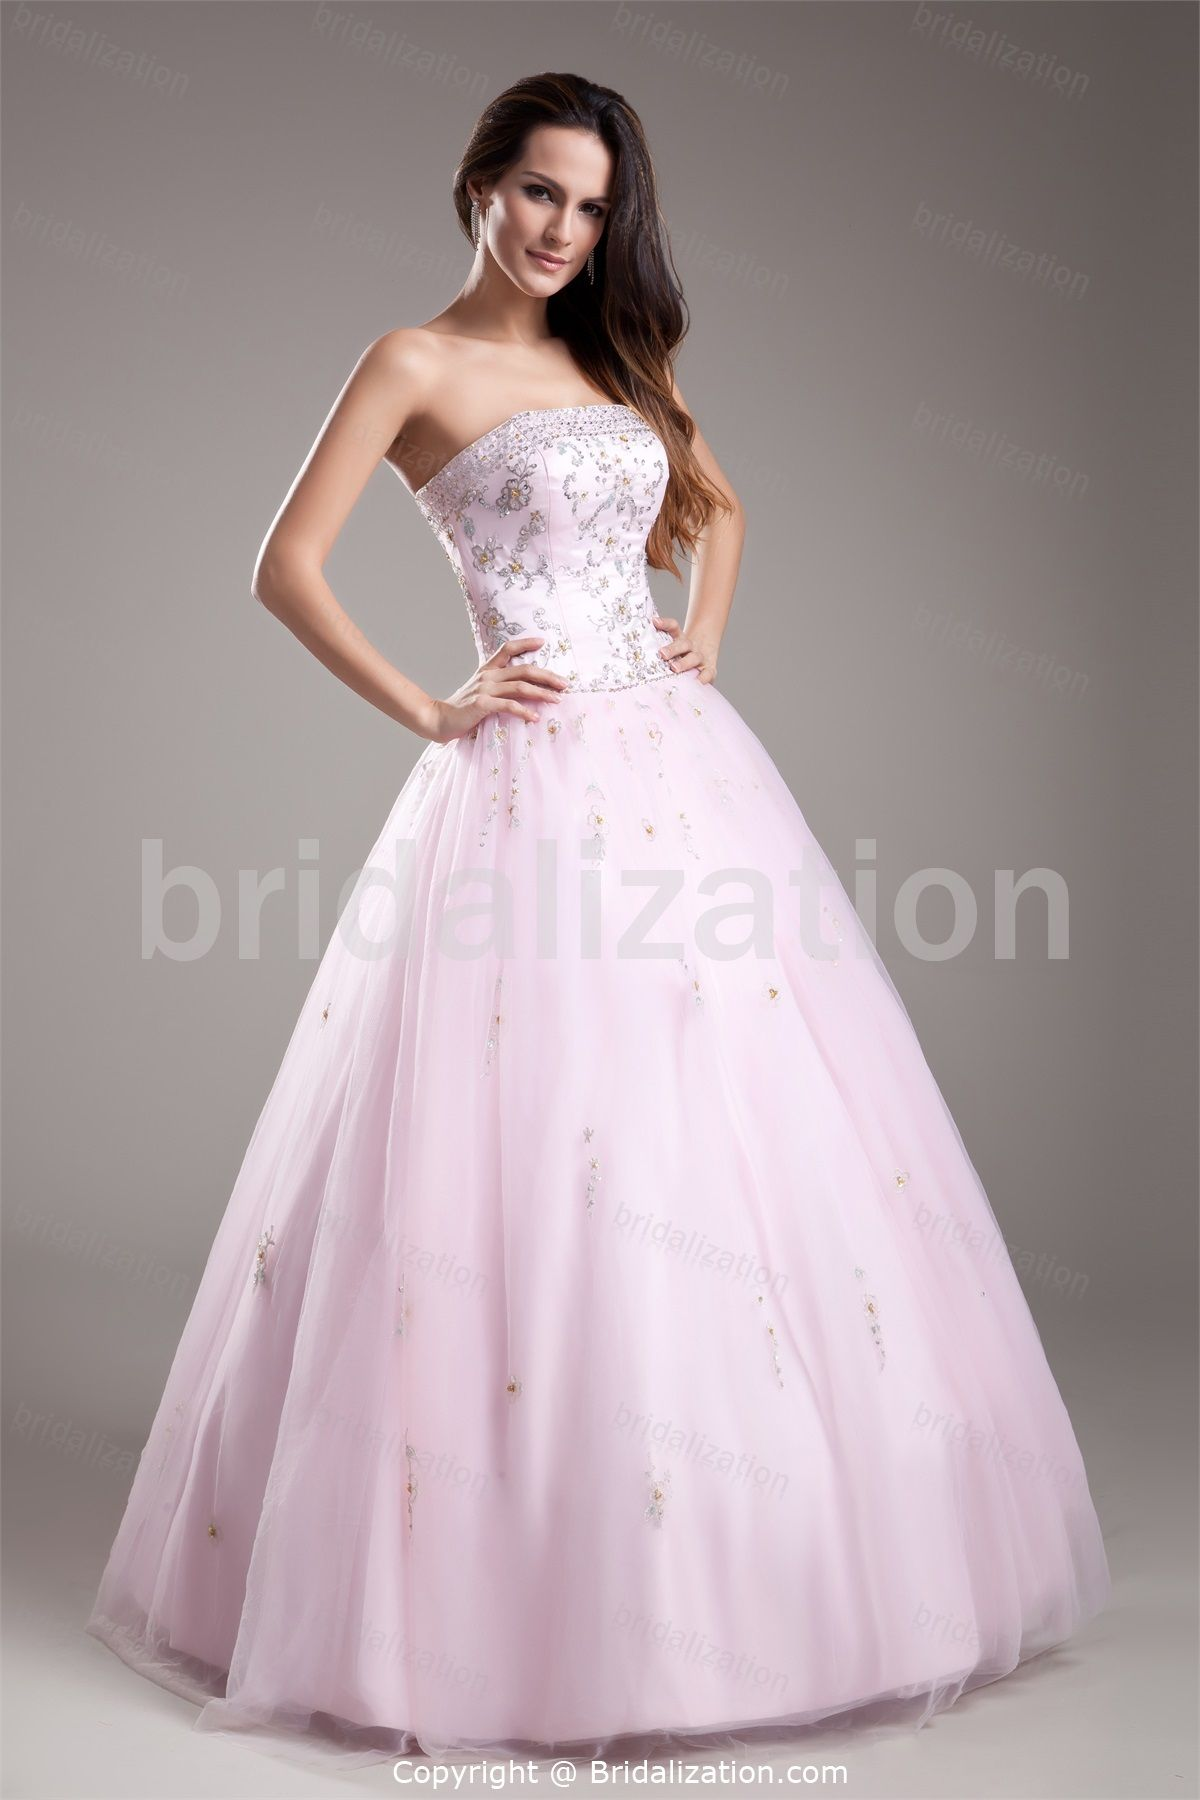 Light Pink Ball Gown Floor-Length Sleeveless Prom Dress 003 | PINK ...